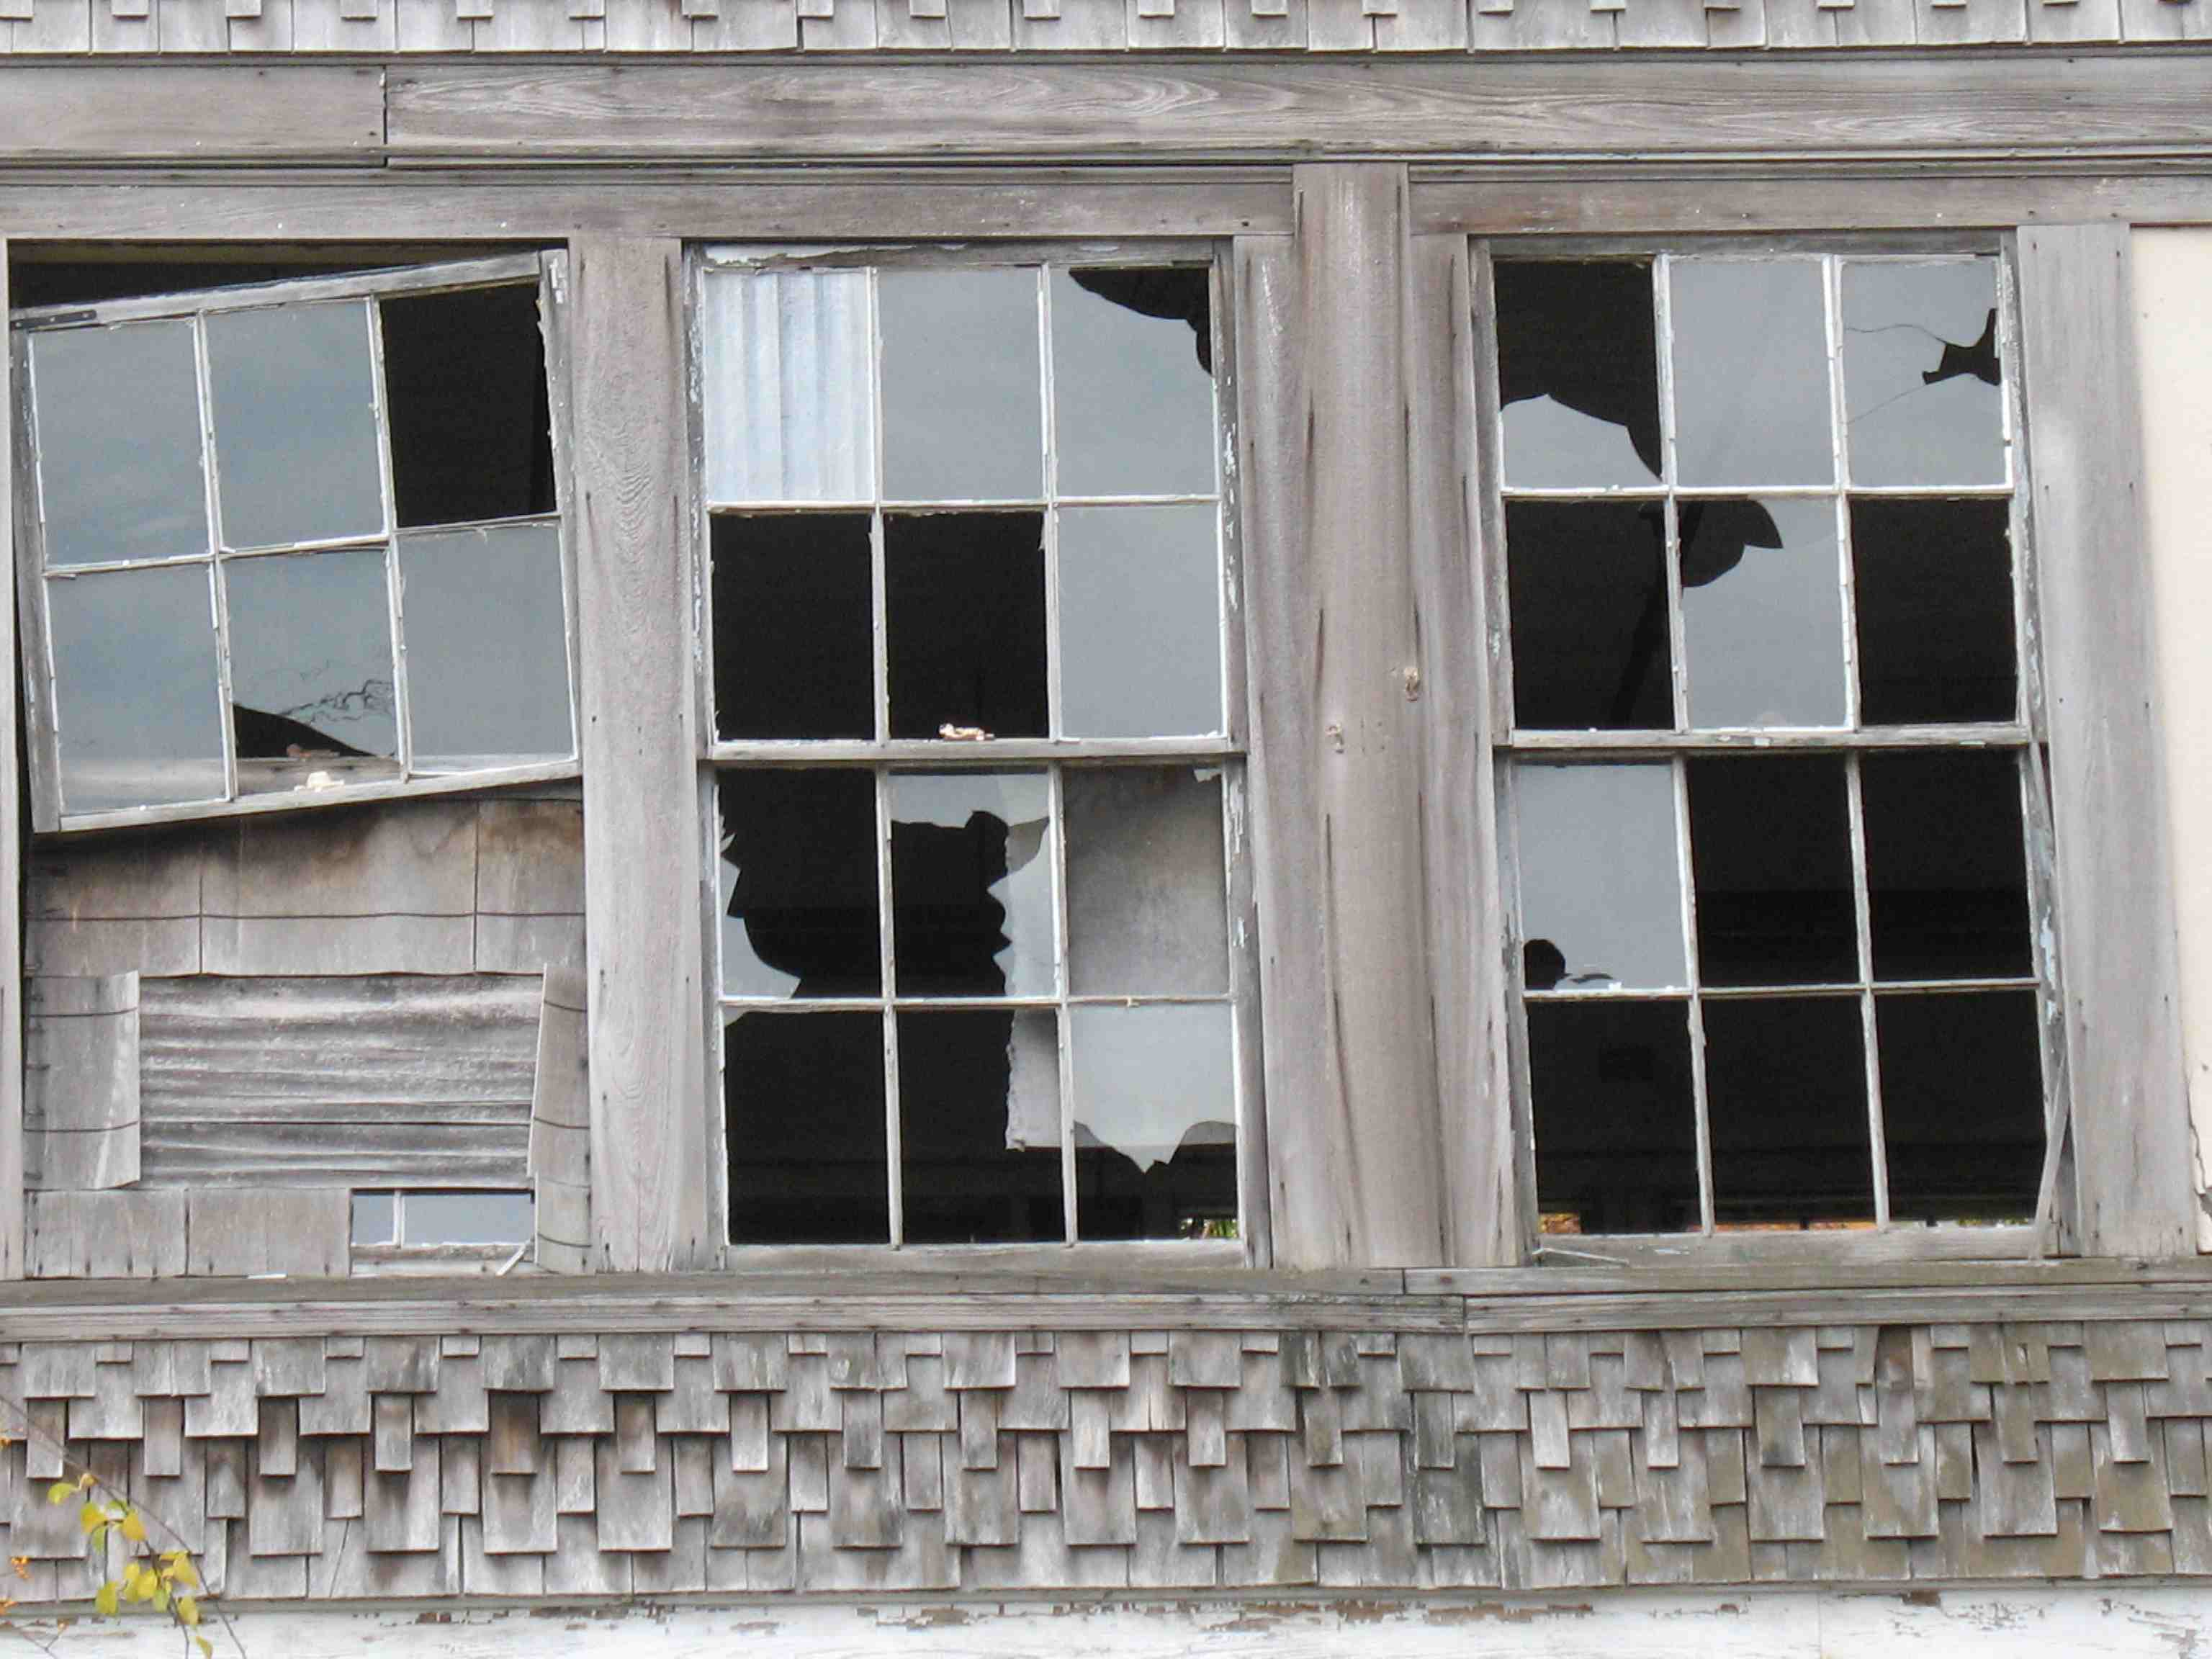 Broken-Window-Theory